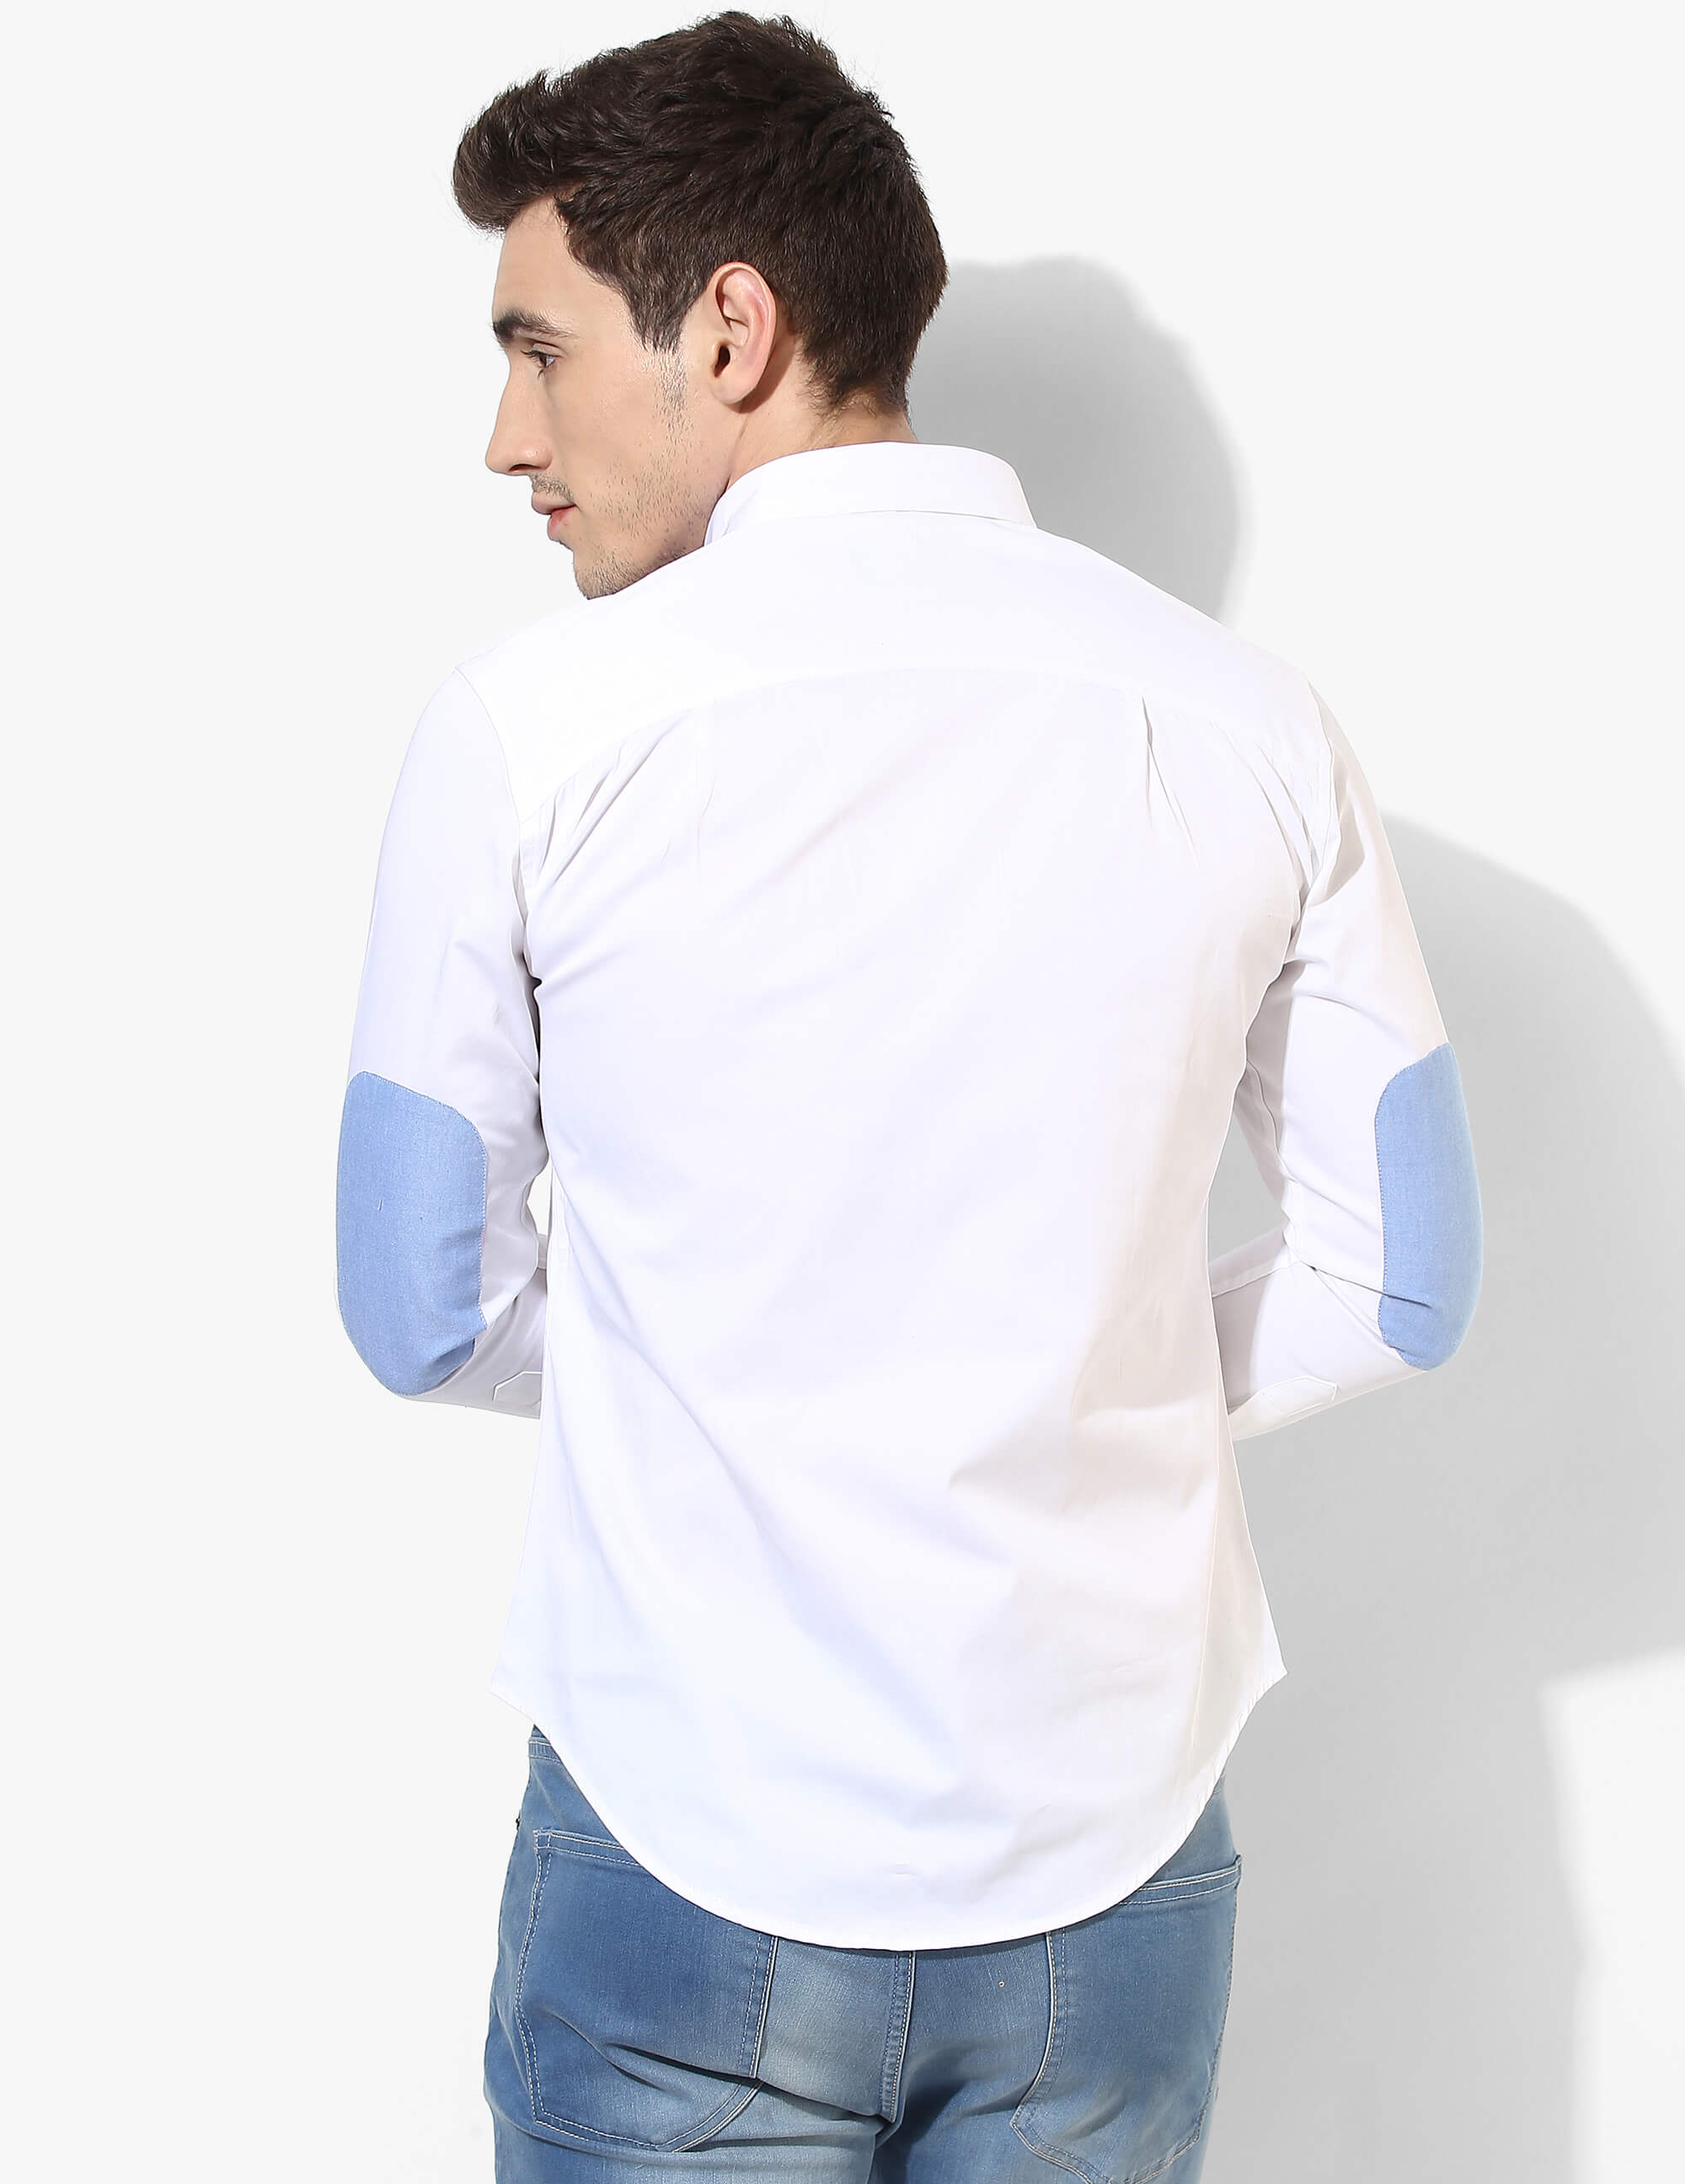 Sturdy White Solid Shirt - Tuck N Stitch